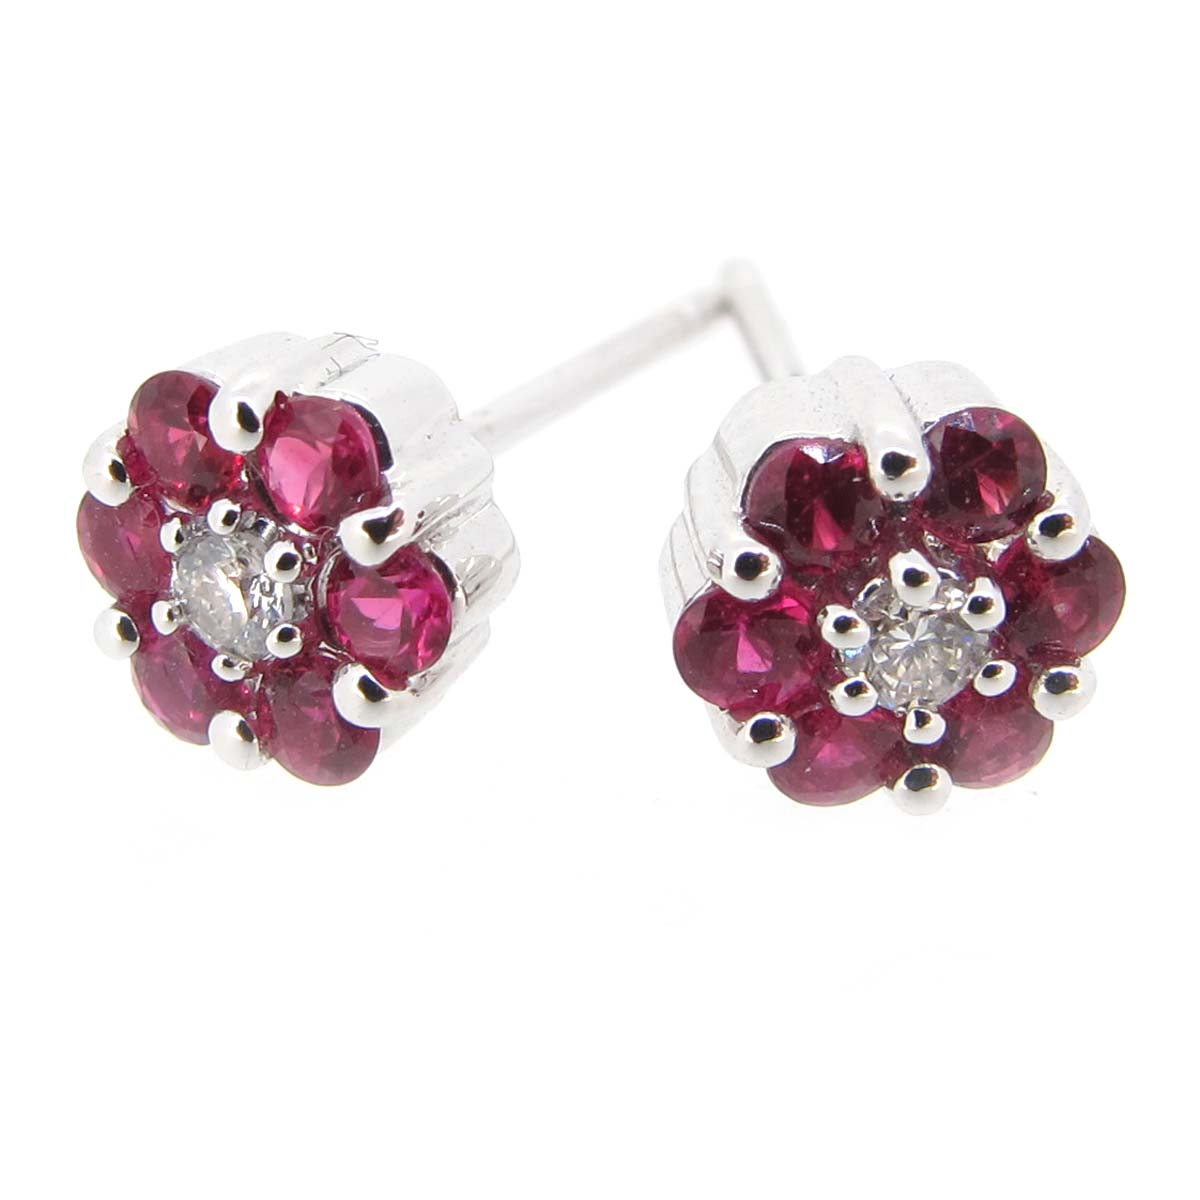 White Gold, Ruby & Diamond Earrings